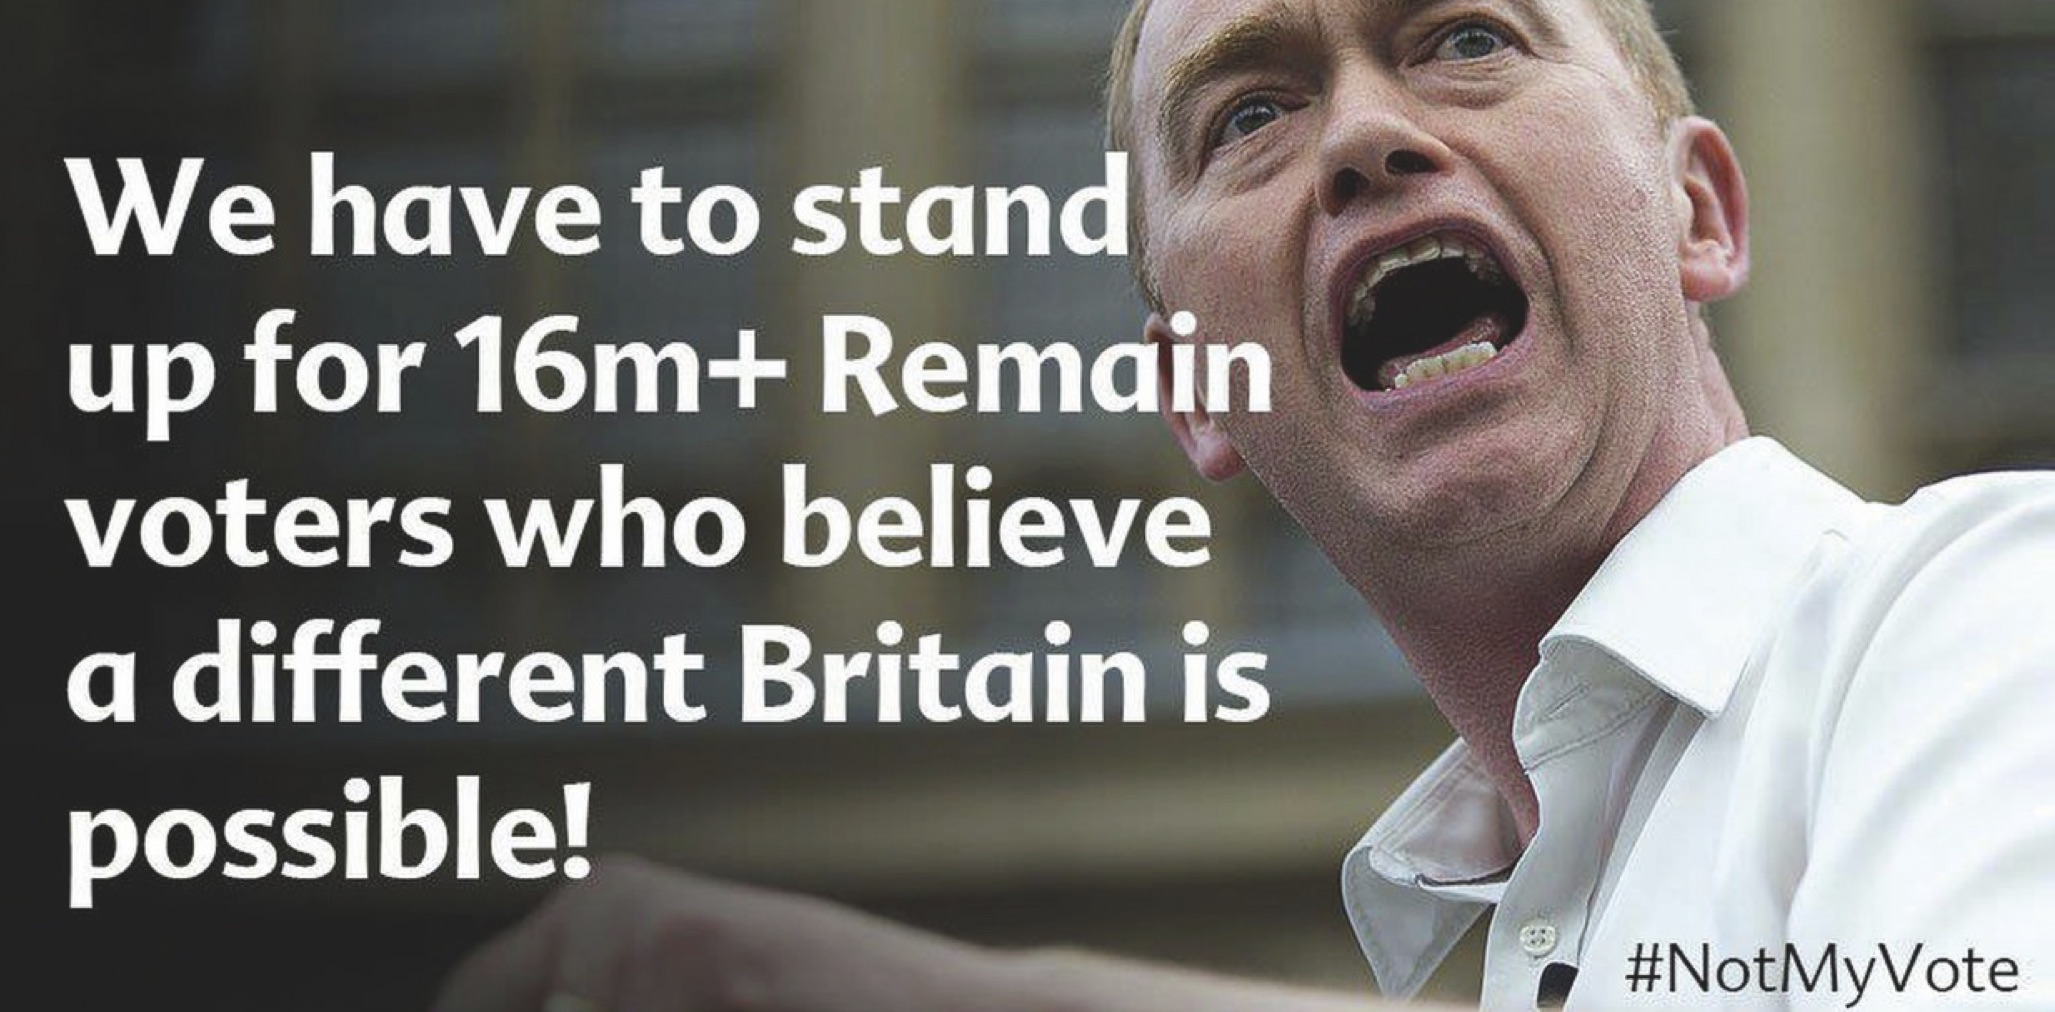 Liberal Democrats stand for the 48%